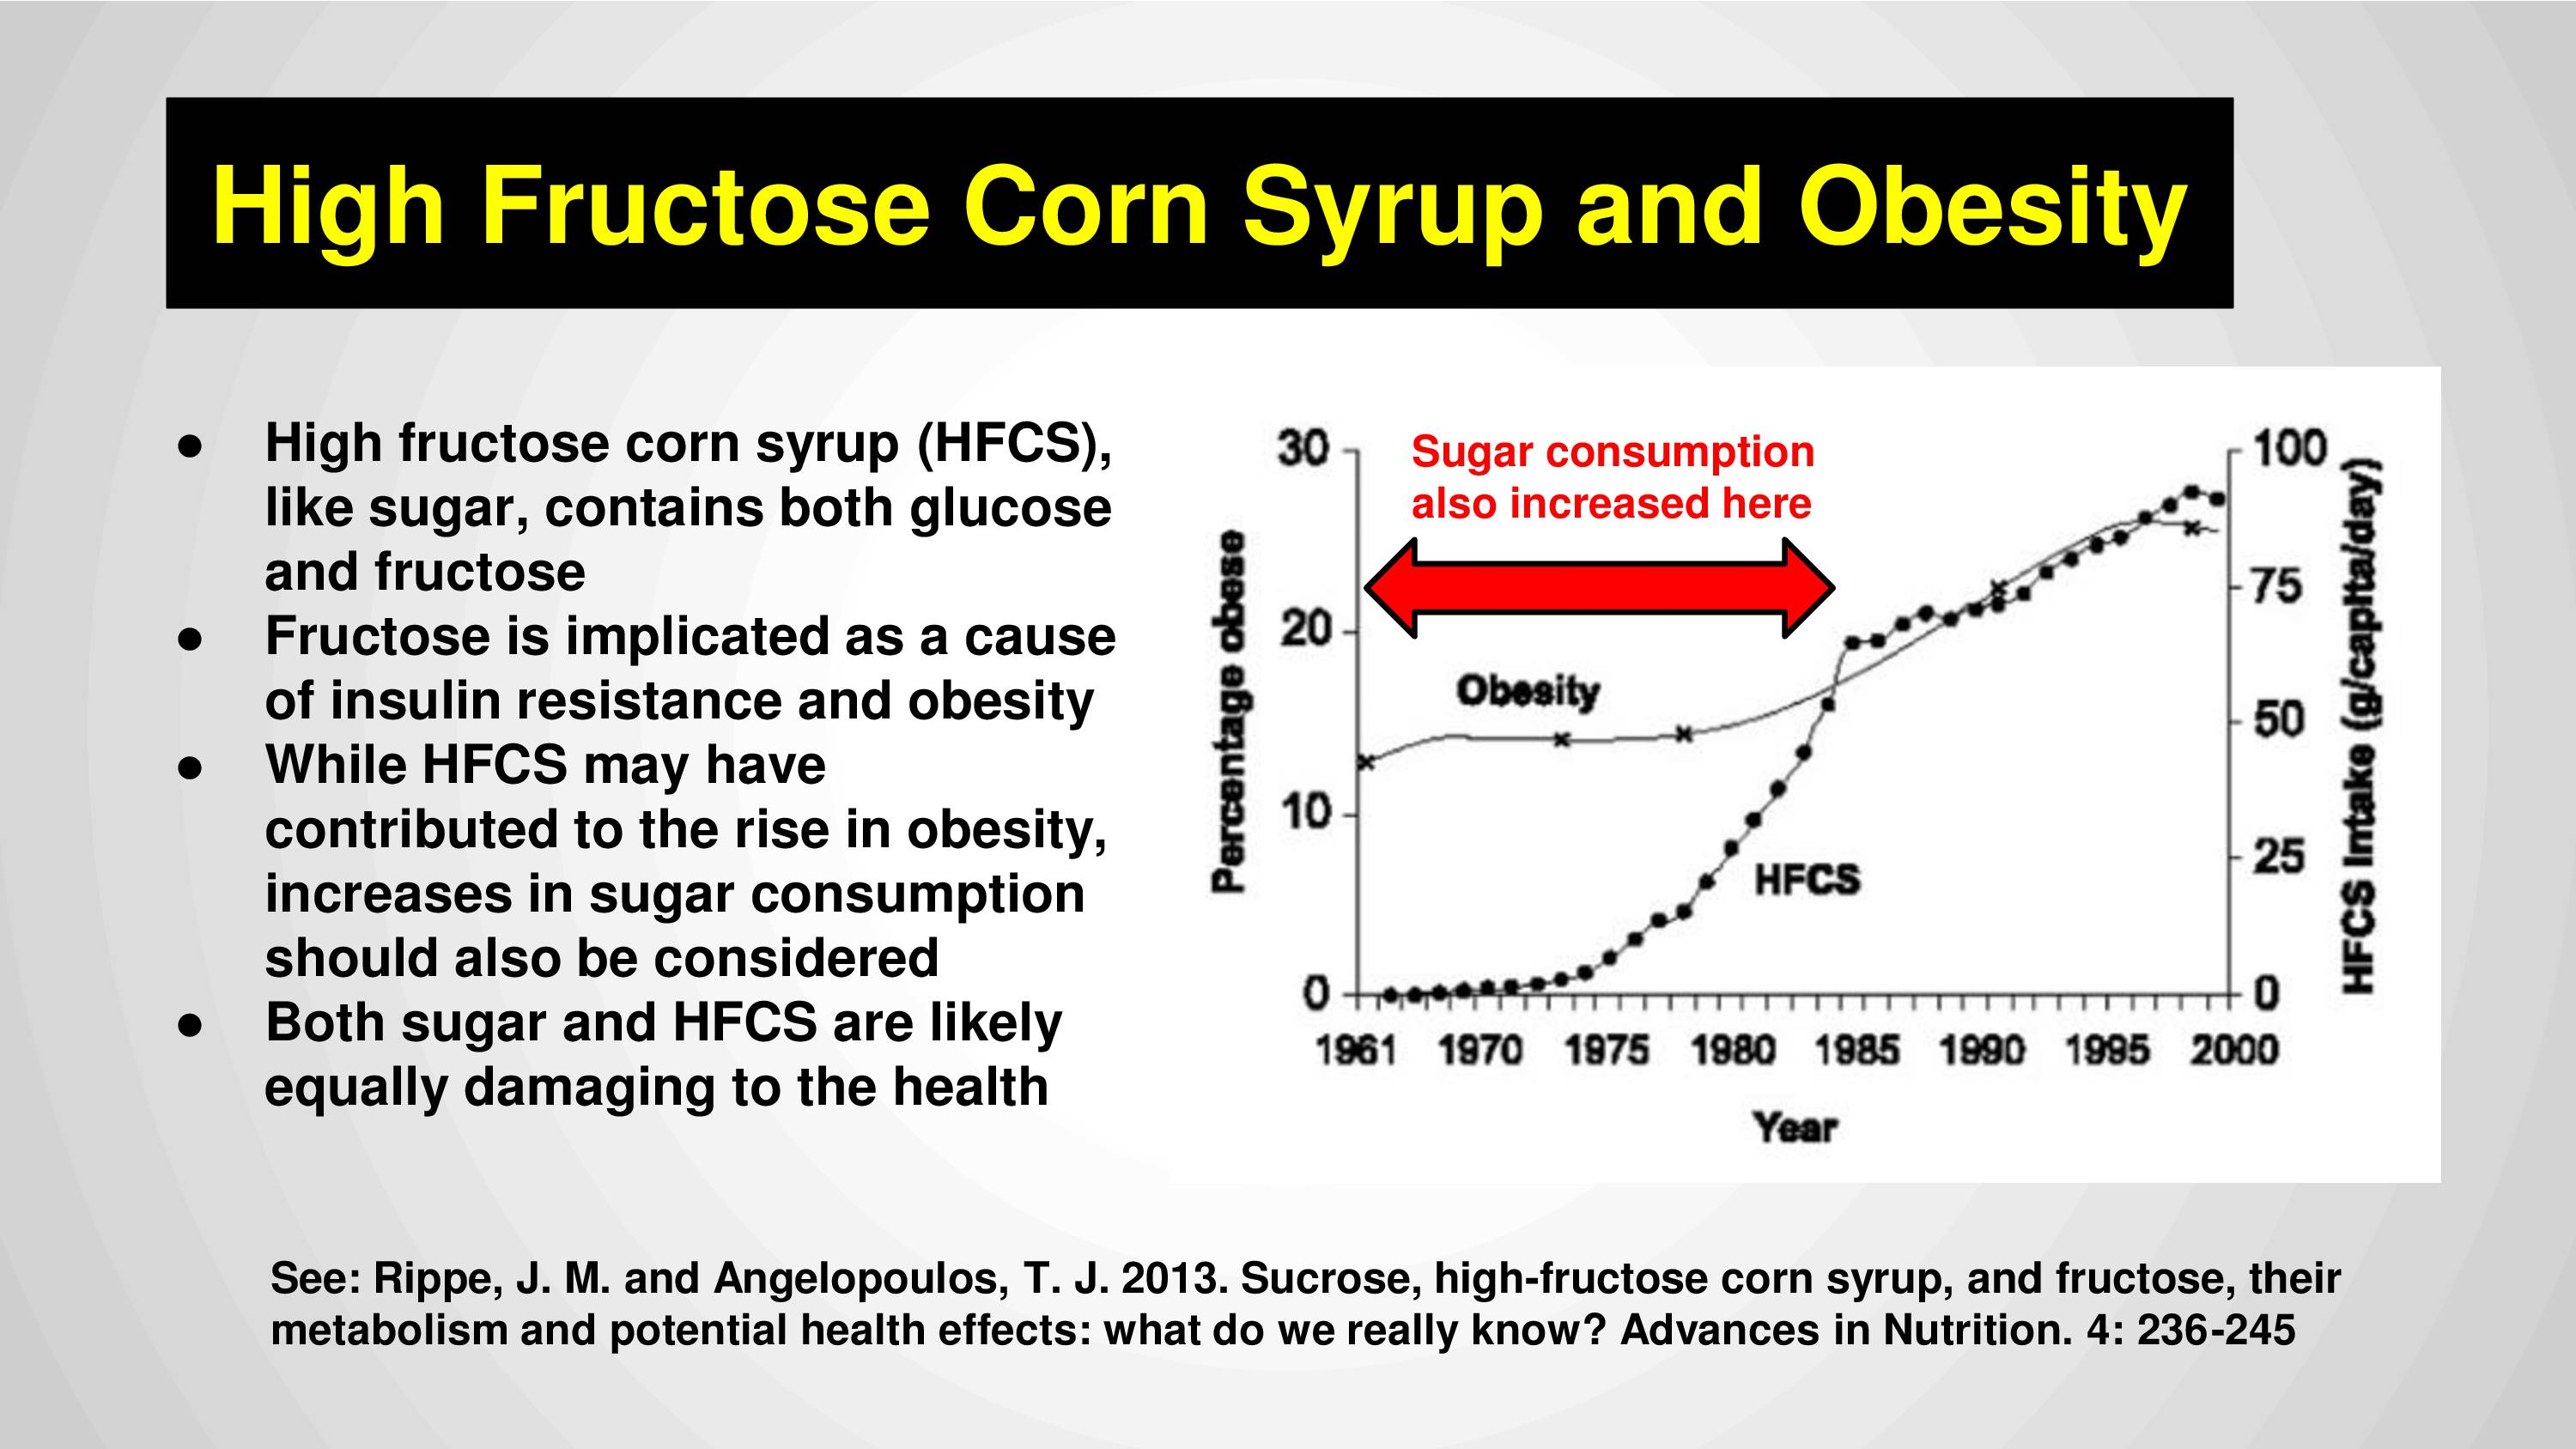 essay on high fructose corn syrup Effects of high fructose corn syrup essay 1568 words | 7 pages abstract: this research essay will investigate the effects of high fructose corn syrup the liver is effected because the fructose—as it is being metabolized deposits fatty acids into the liver, it also develops cirrhosis, which has the same effect normally seen in alcoholics.